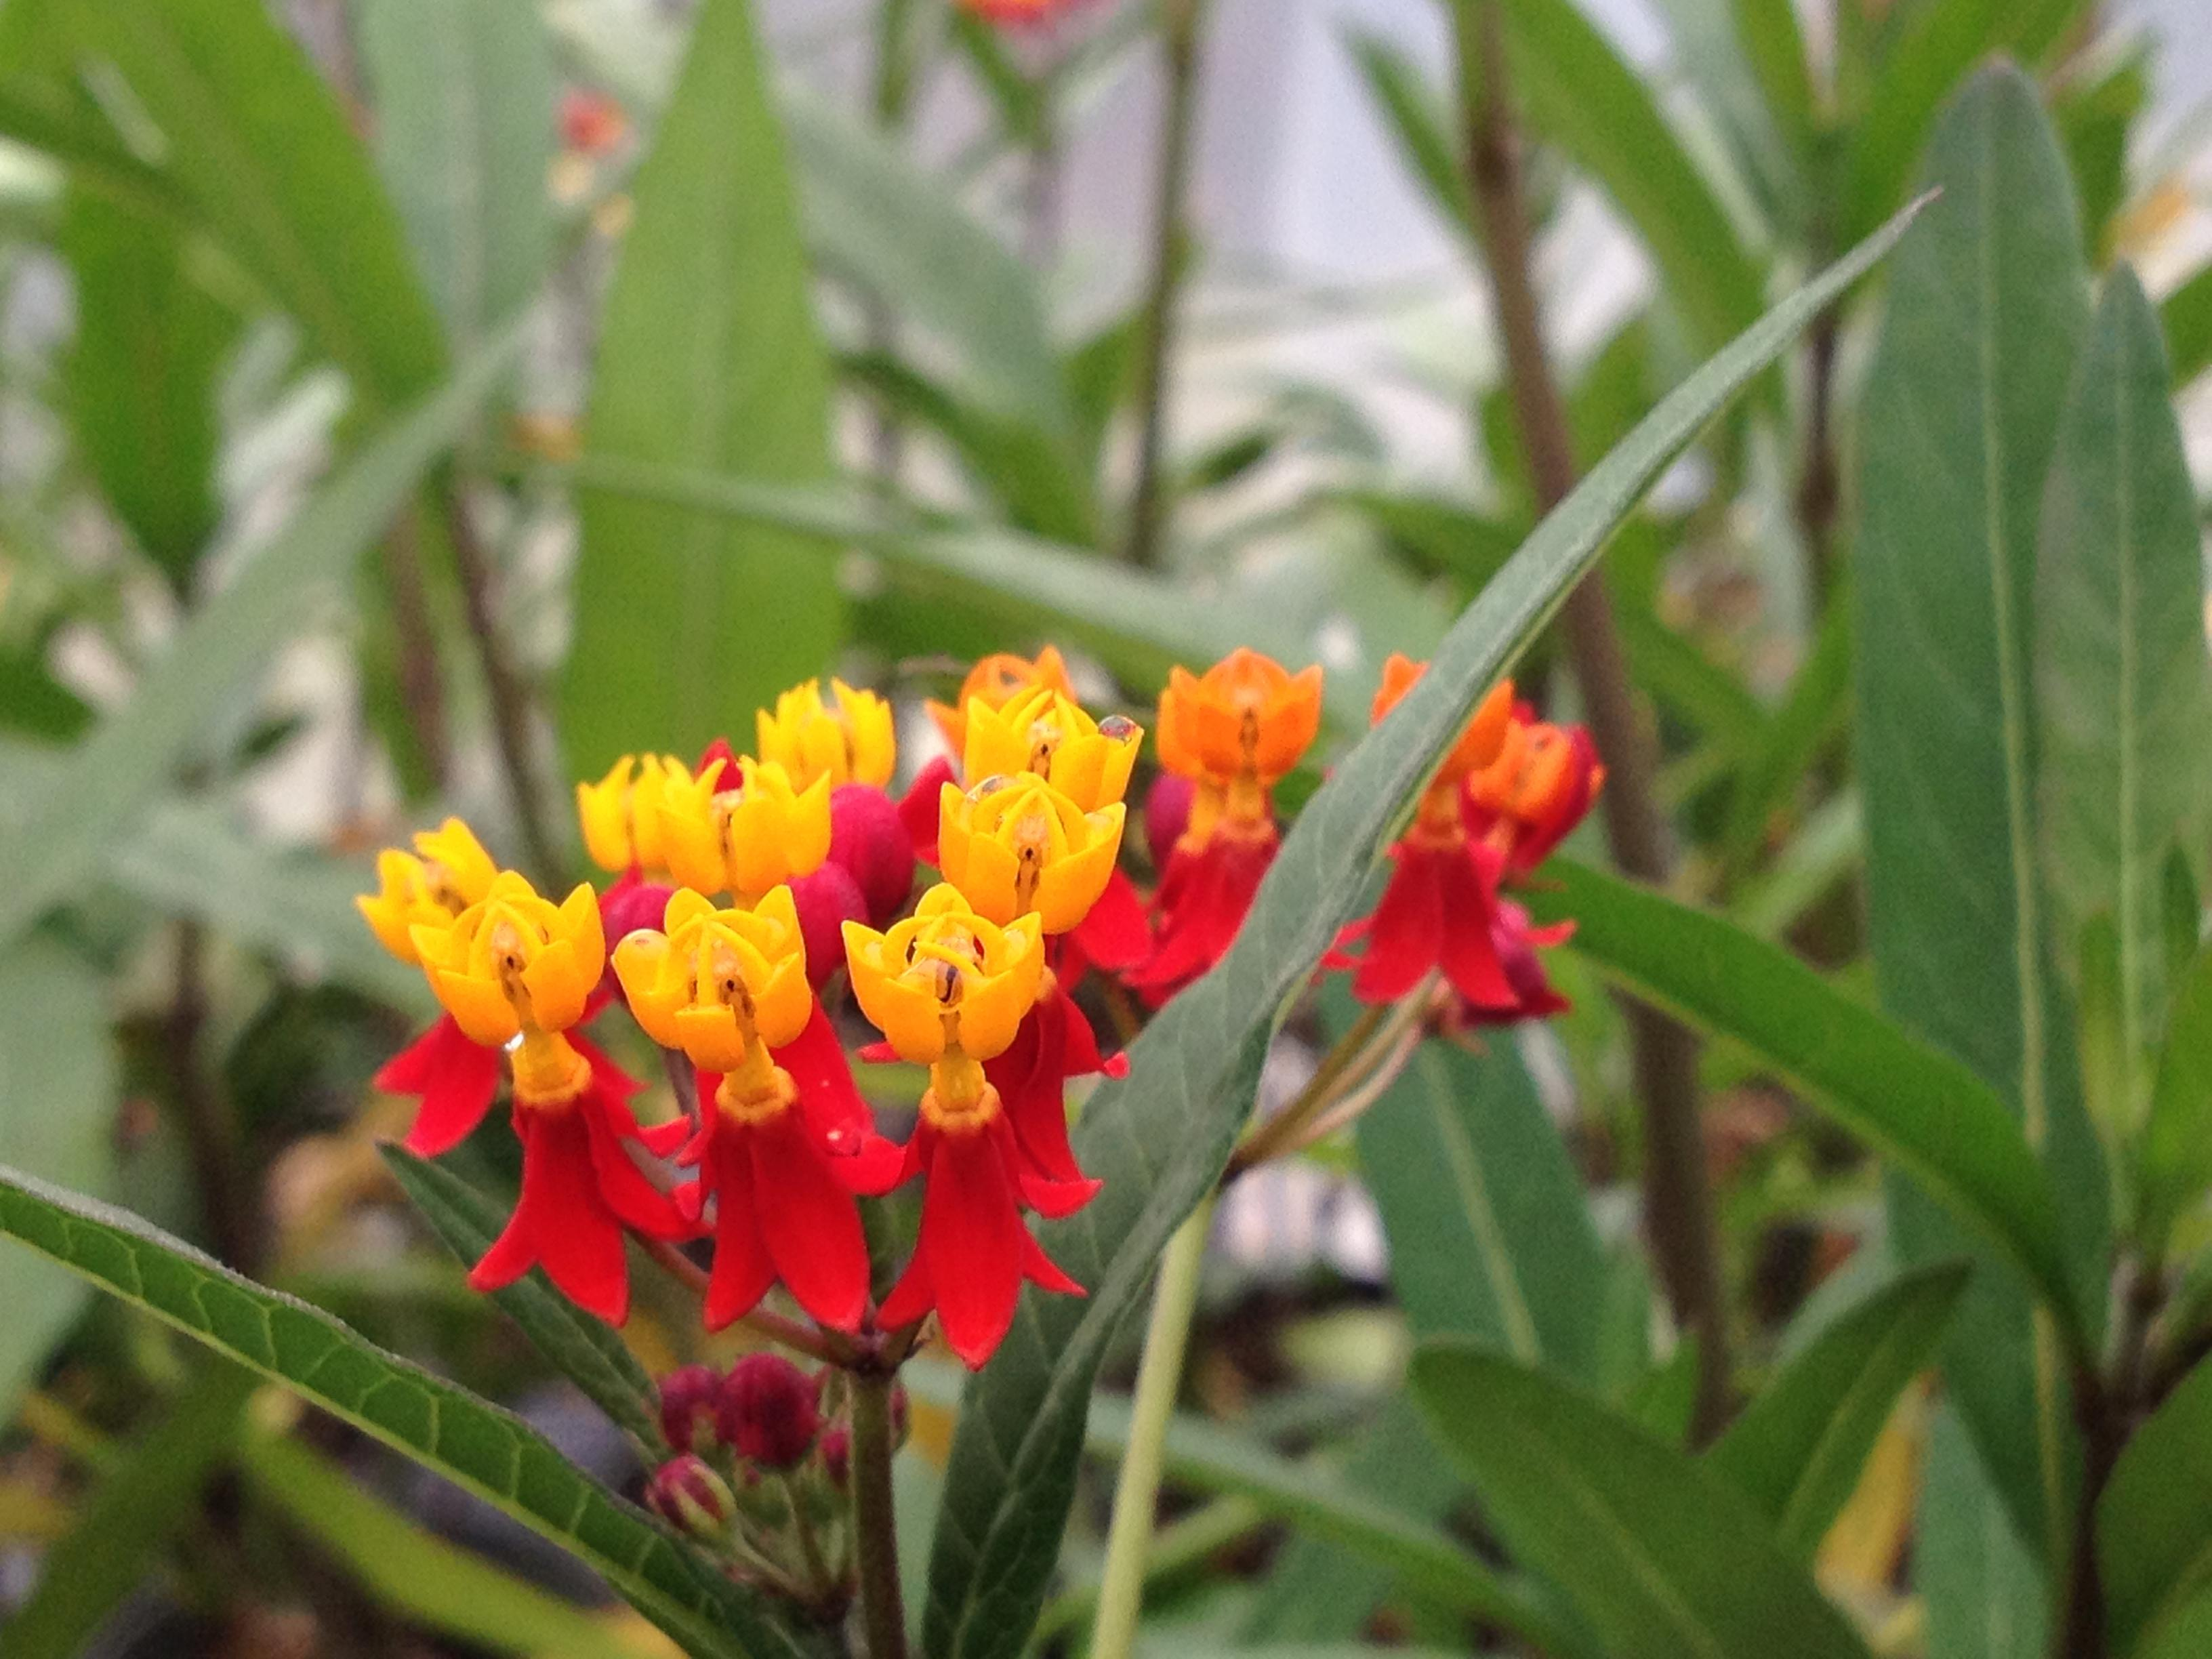 Milkweed Red Tropical Perennial Live Plant Butterfly Garden Attracts